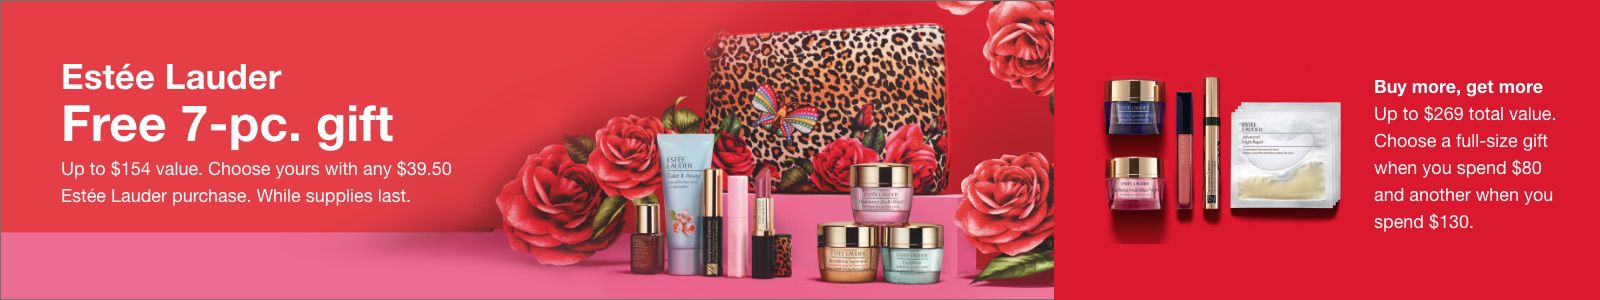 Estee Lauder, Free 7-pc, gift, Buy more, get more